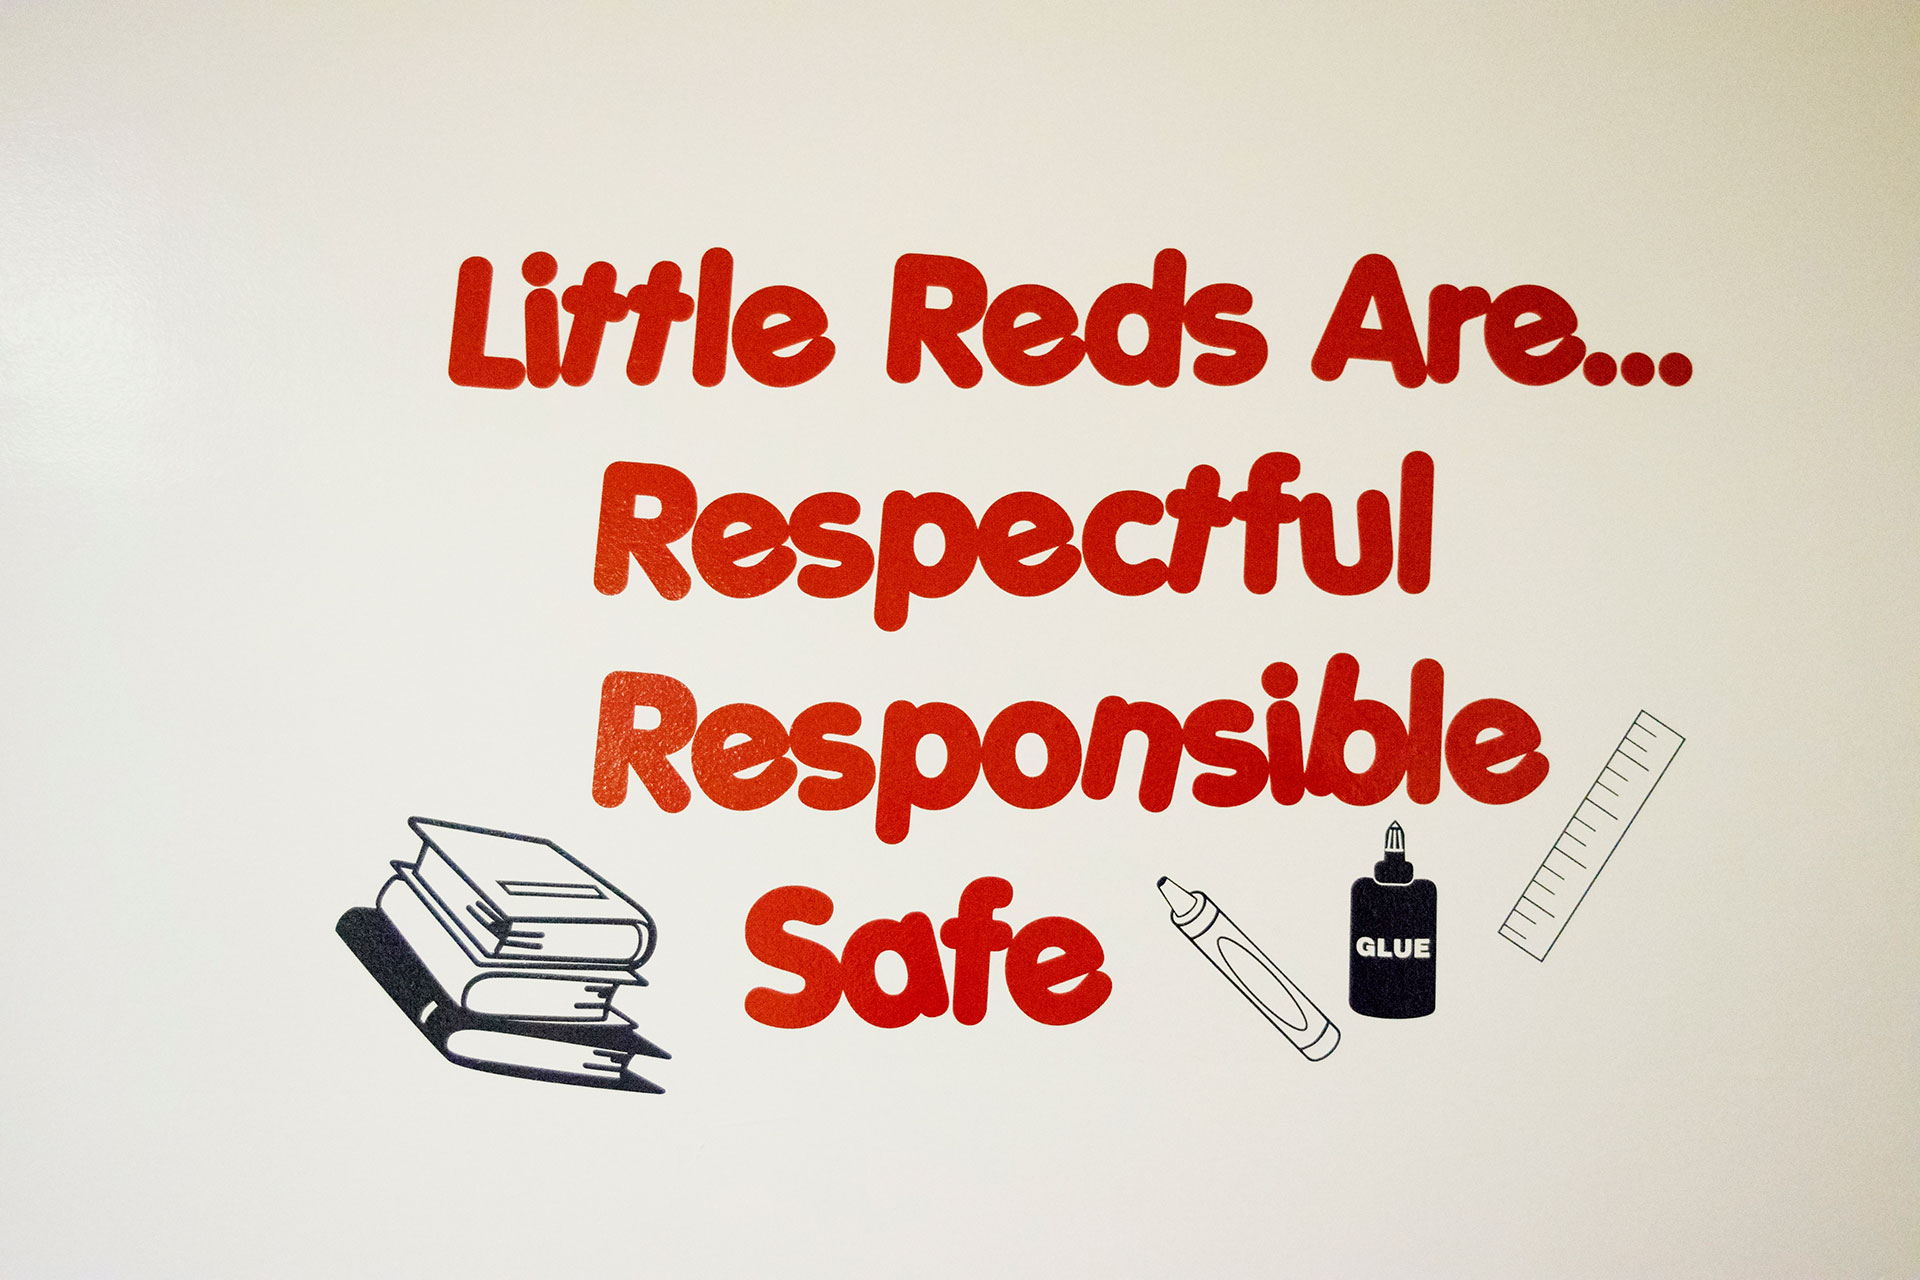 Little Reds Are Respectful